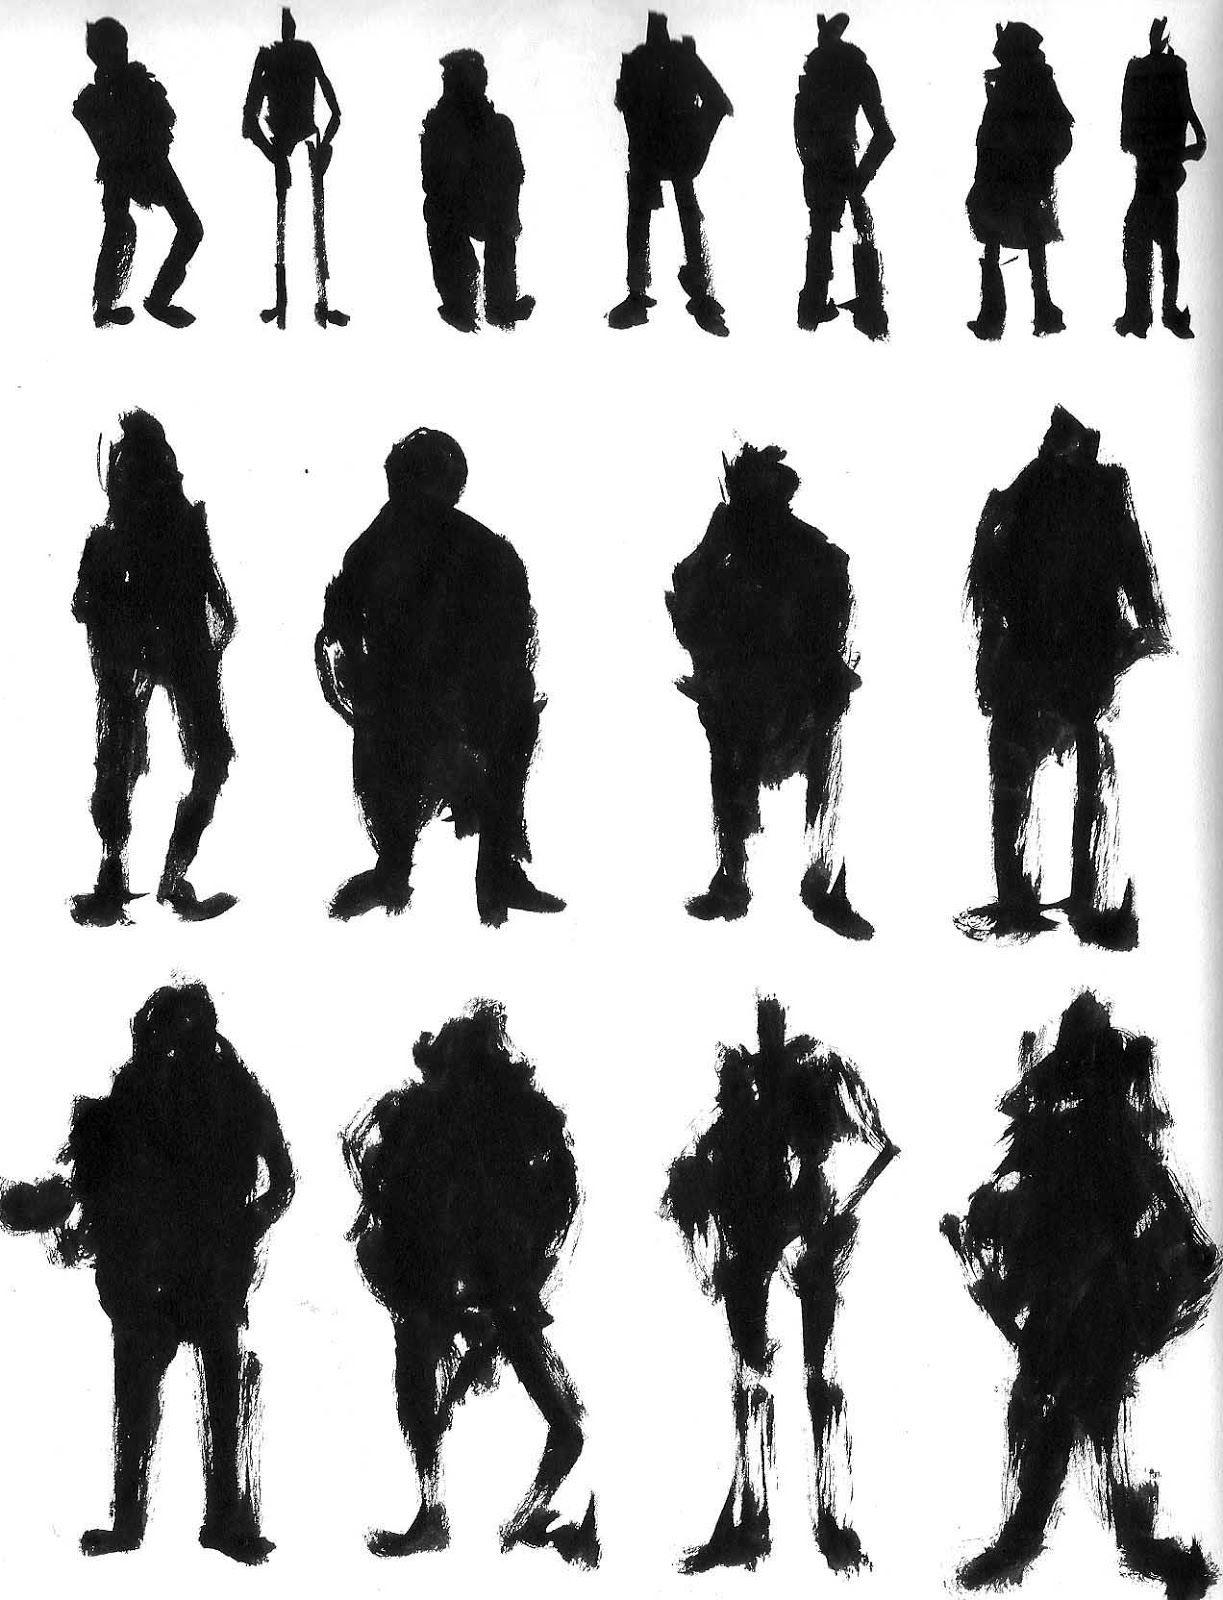 Character Design Silhouette : Images about character design silhouette on pinterest